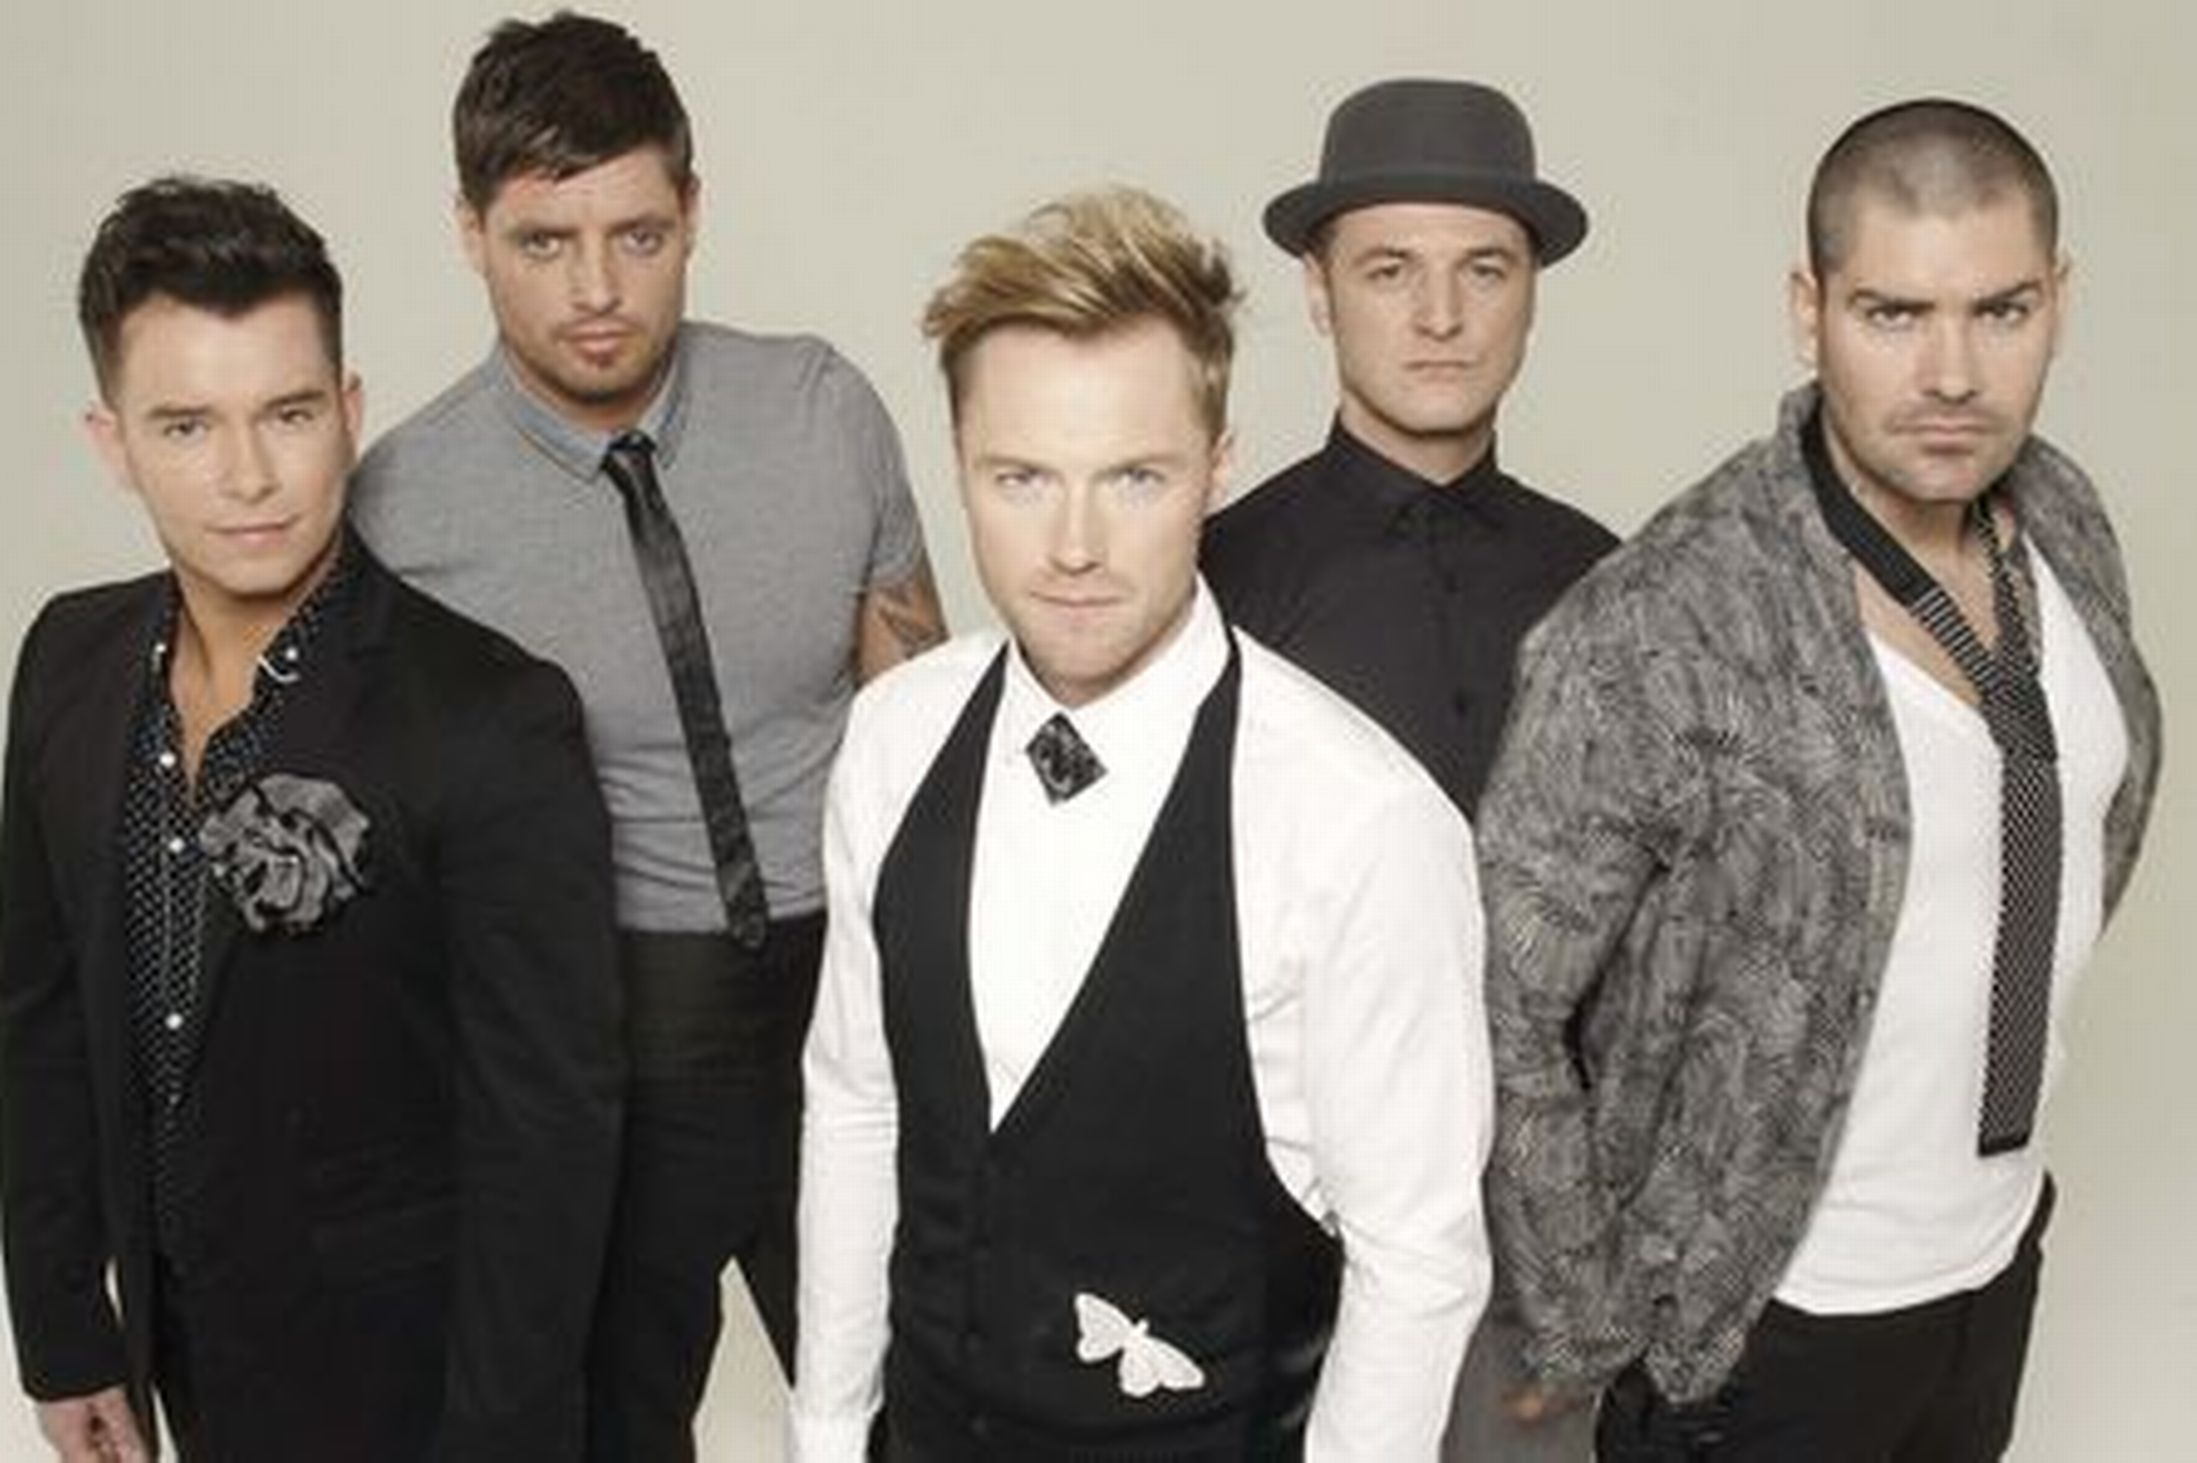 Boyzone hd wallpaper background image 2197x1463 id for Zona 5 mobilia no club download